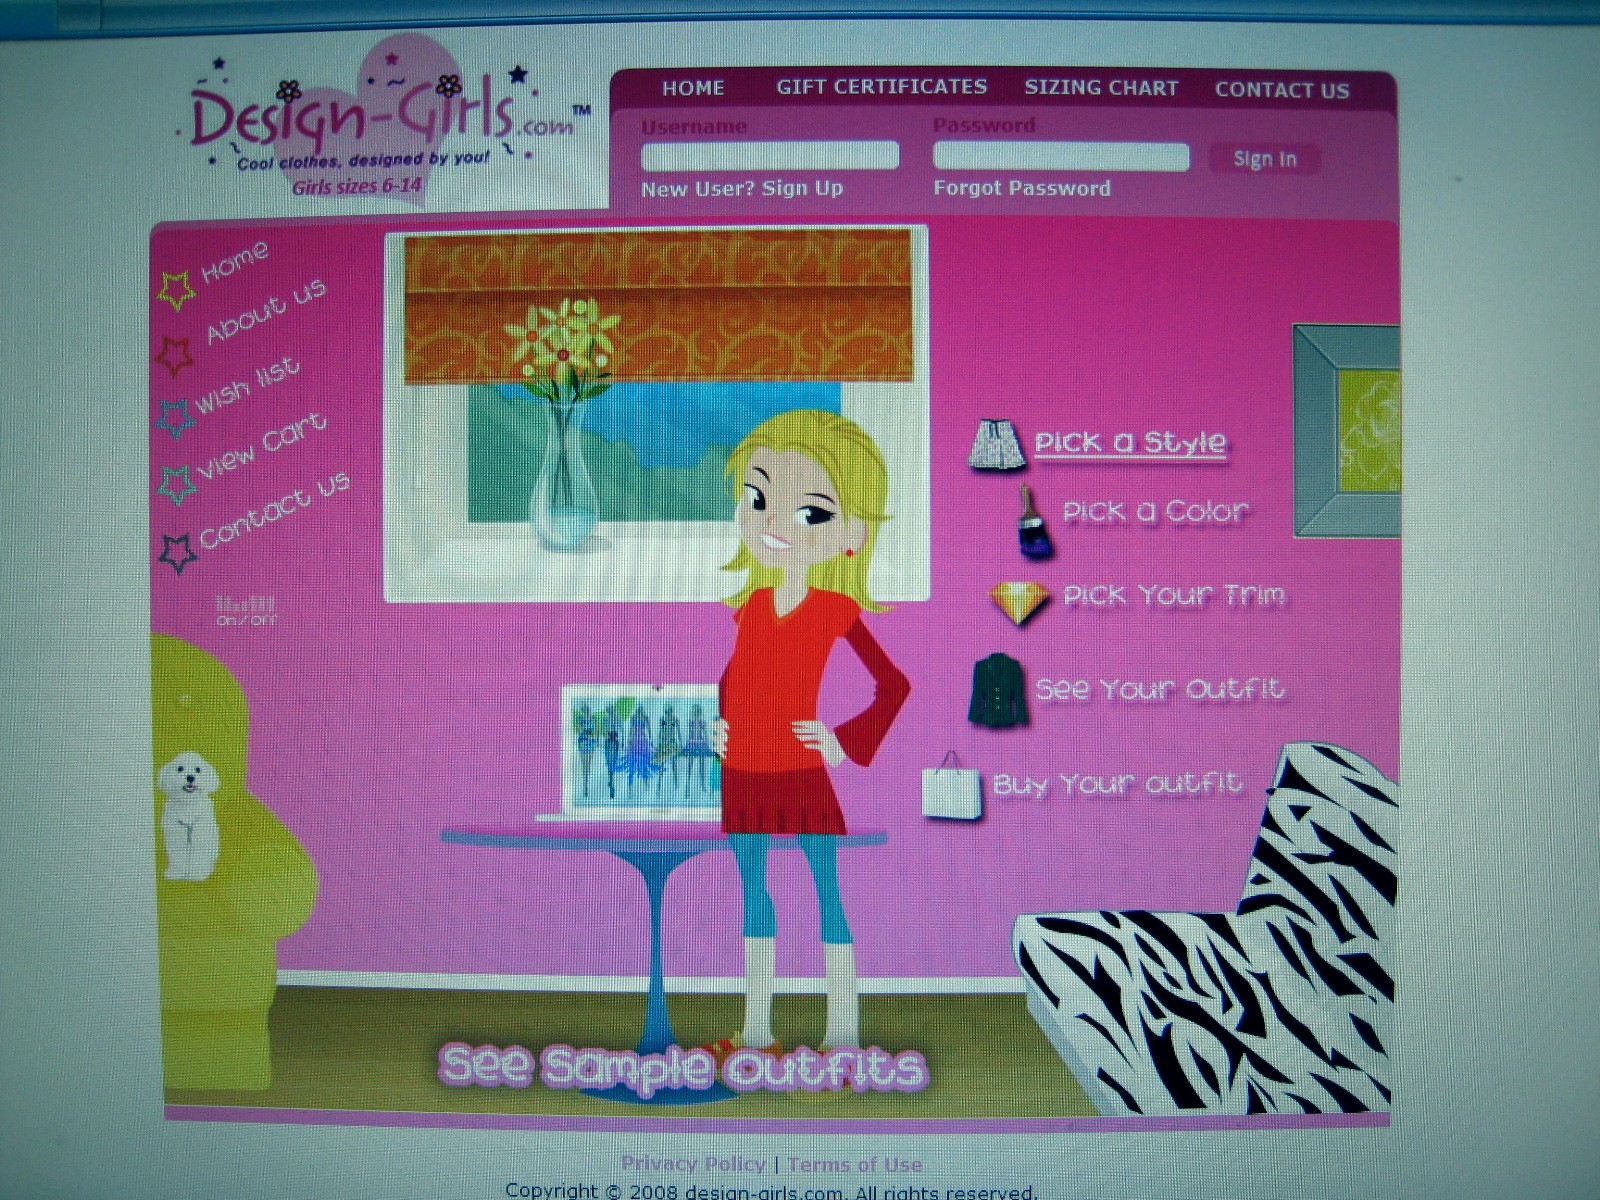 Design Your Own Clothes Online For Girls Design Girls com